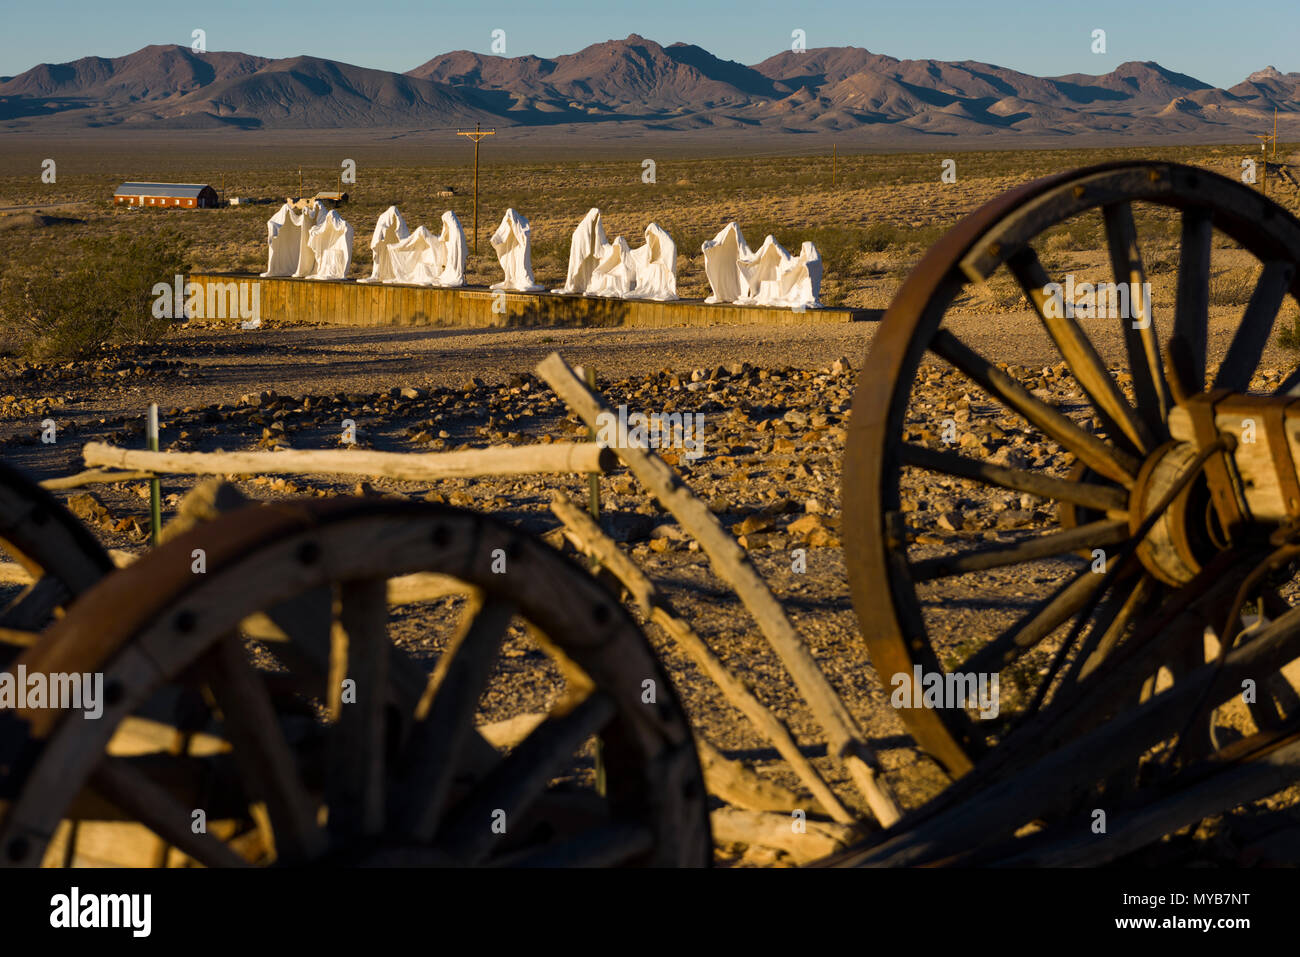 Some of the famous art work in the Goldwell Open Air Museum in the ghost town of Rhyolite, Nevada, North America - Stock Image